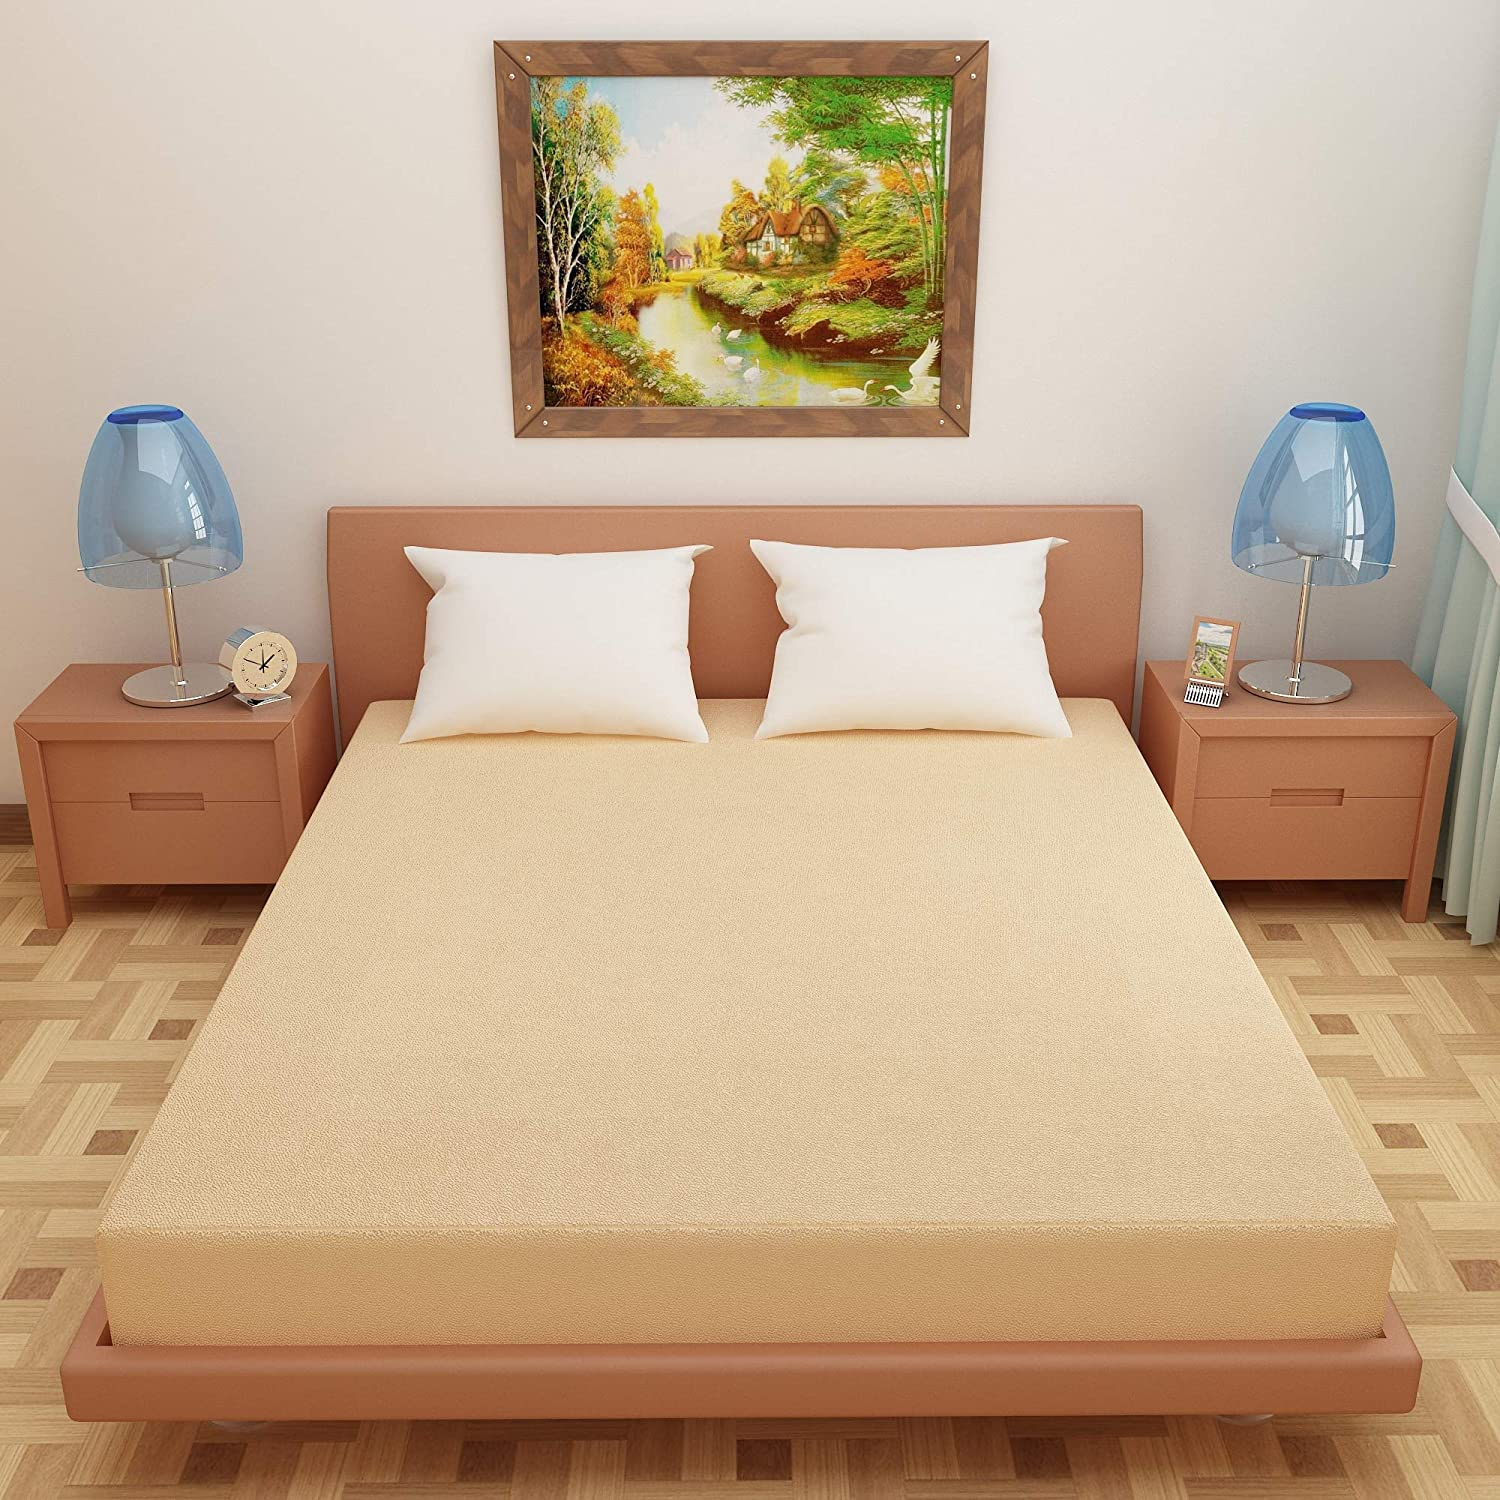 DREAM CARE Breathable and Waterproof Terry Cloth Elastic Fitted Mattress Protector Beige